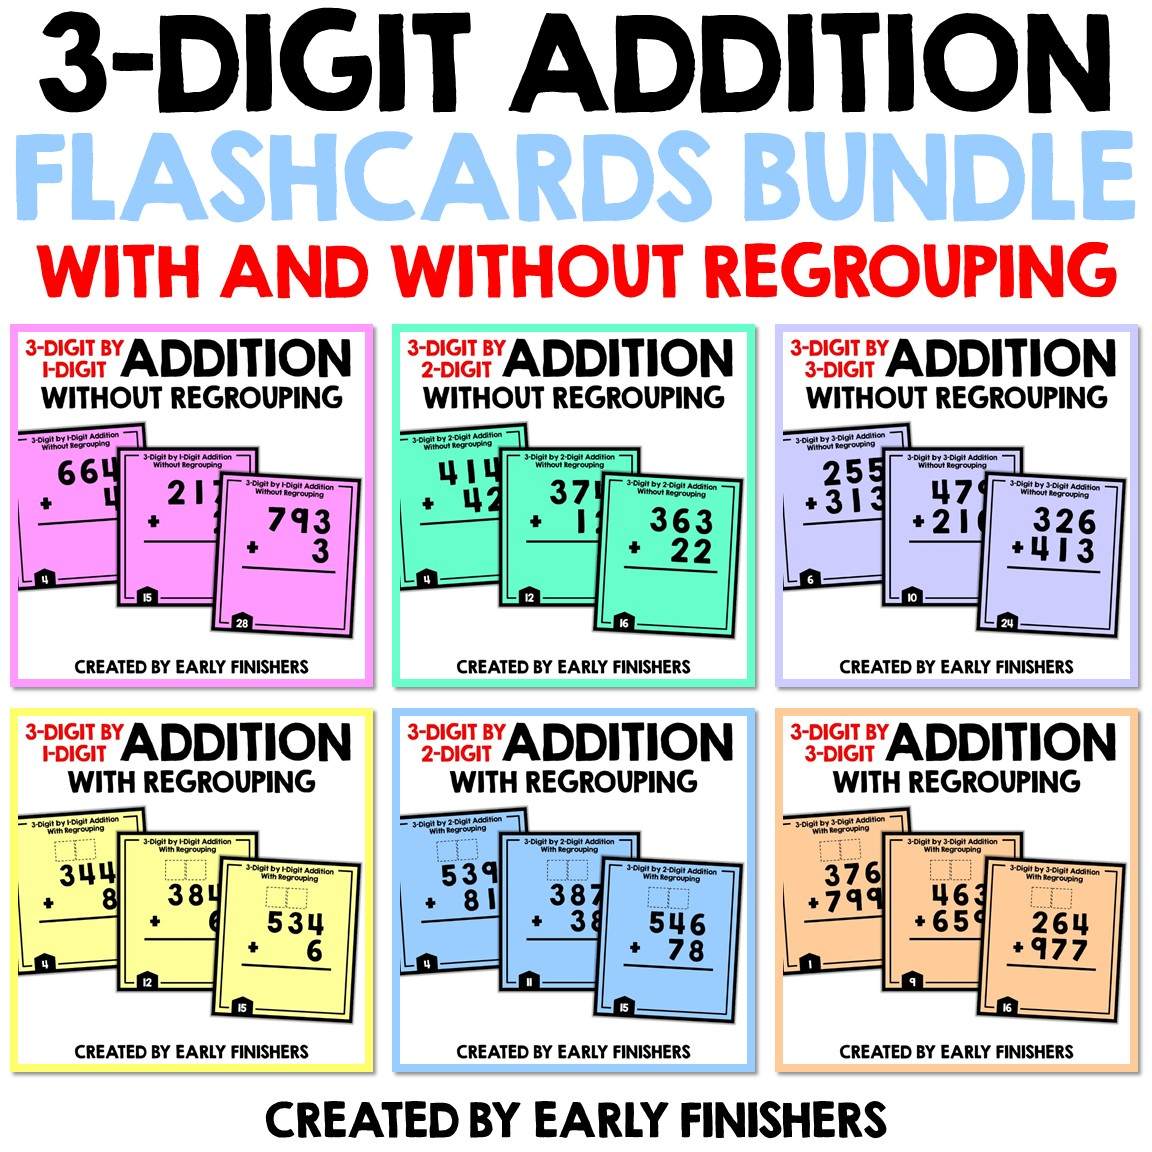 3 Digit Addition With Without Regrouping Bundle